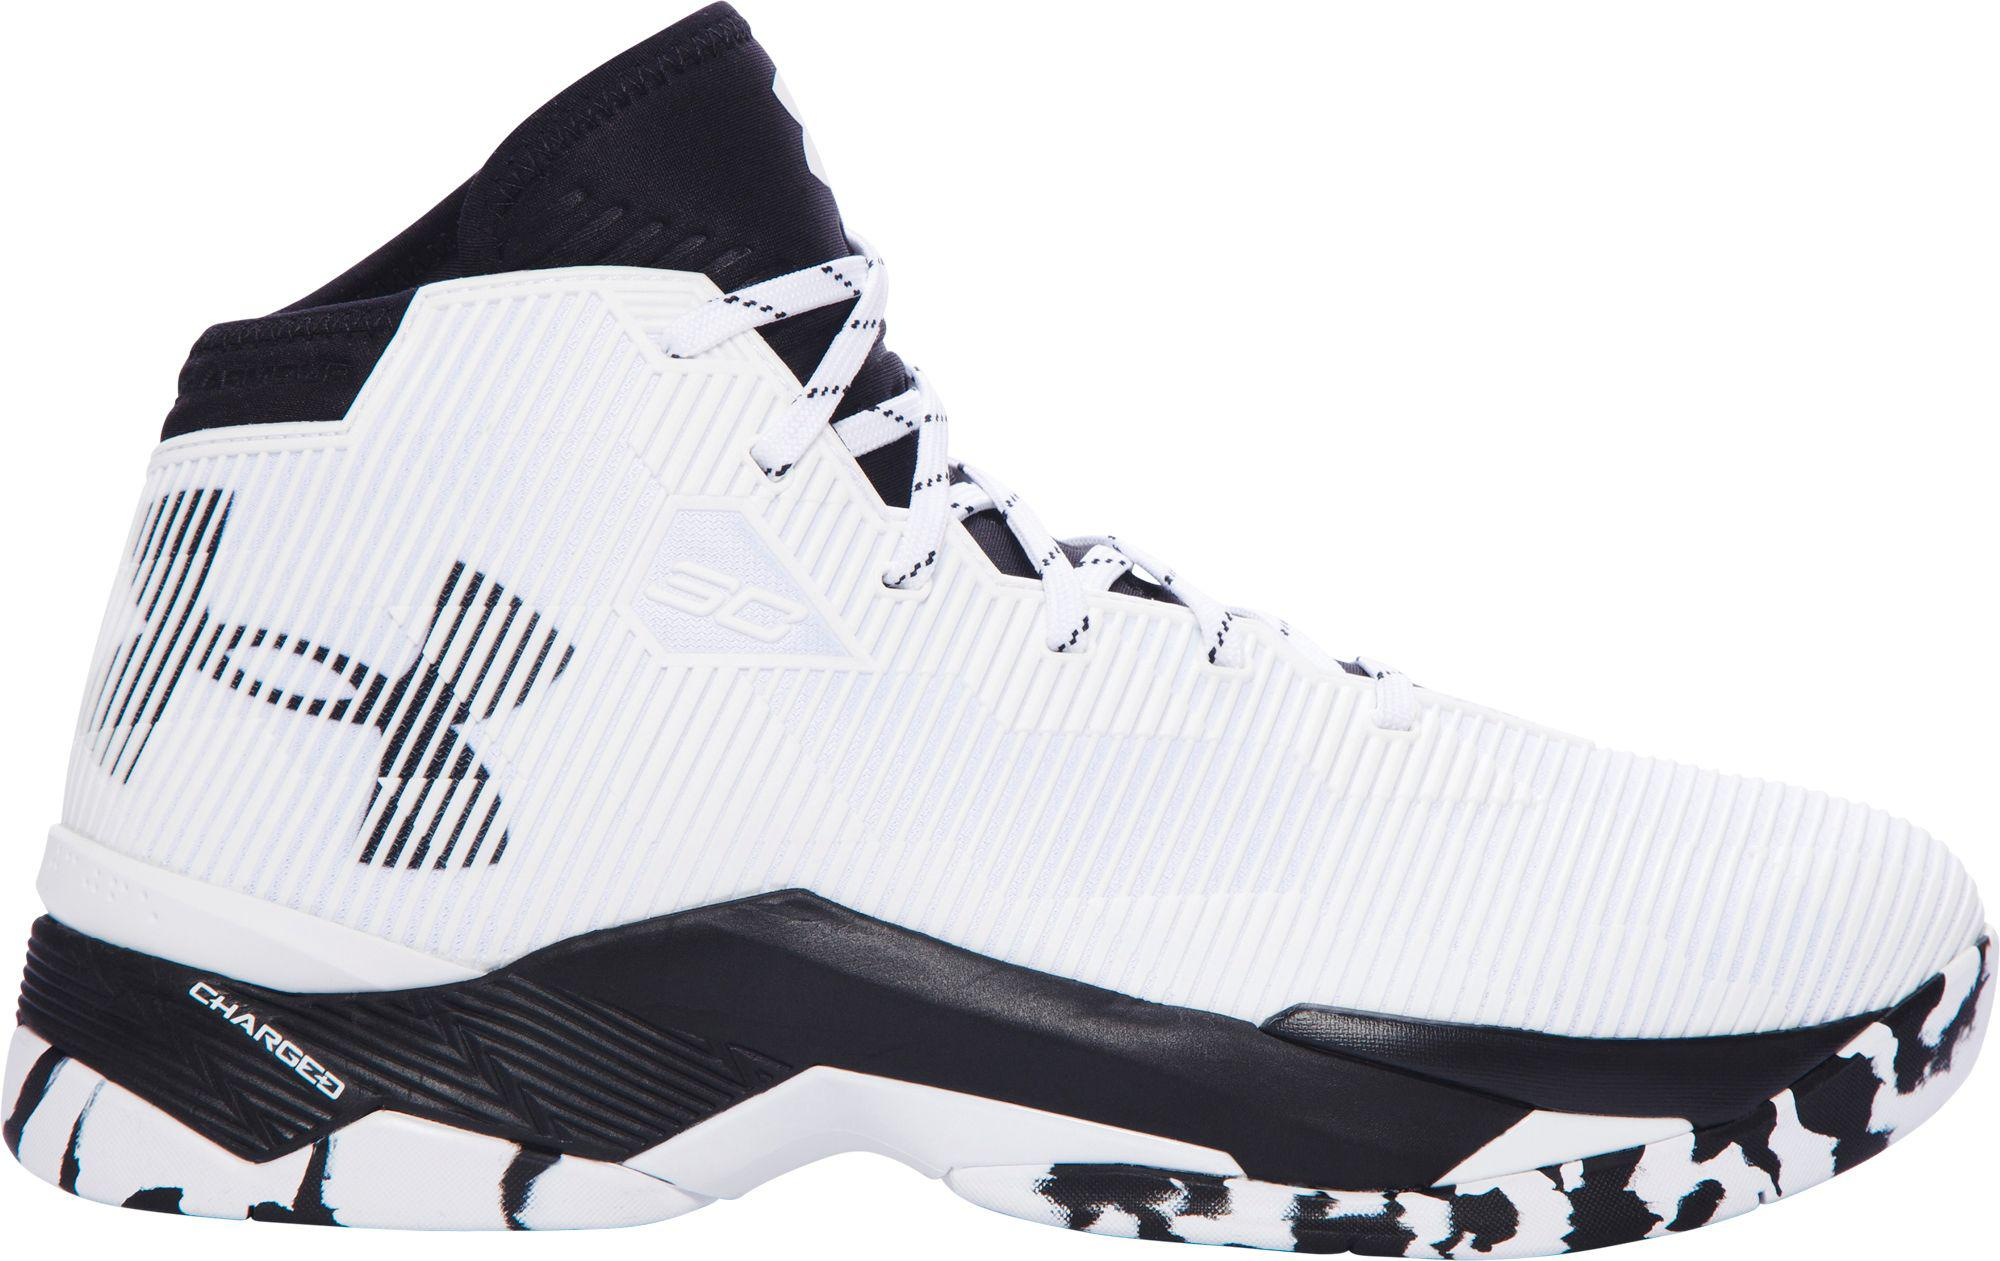 b2c92d9b58bc Lyst - Under Armour Curry 2.5 Basketball Shoes for Men